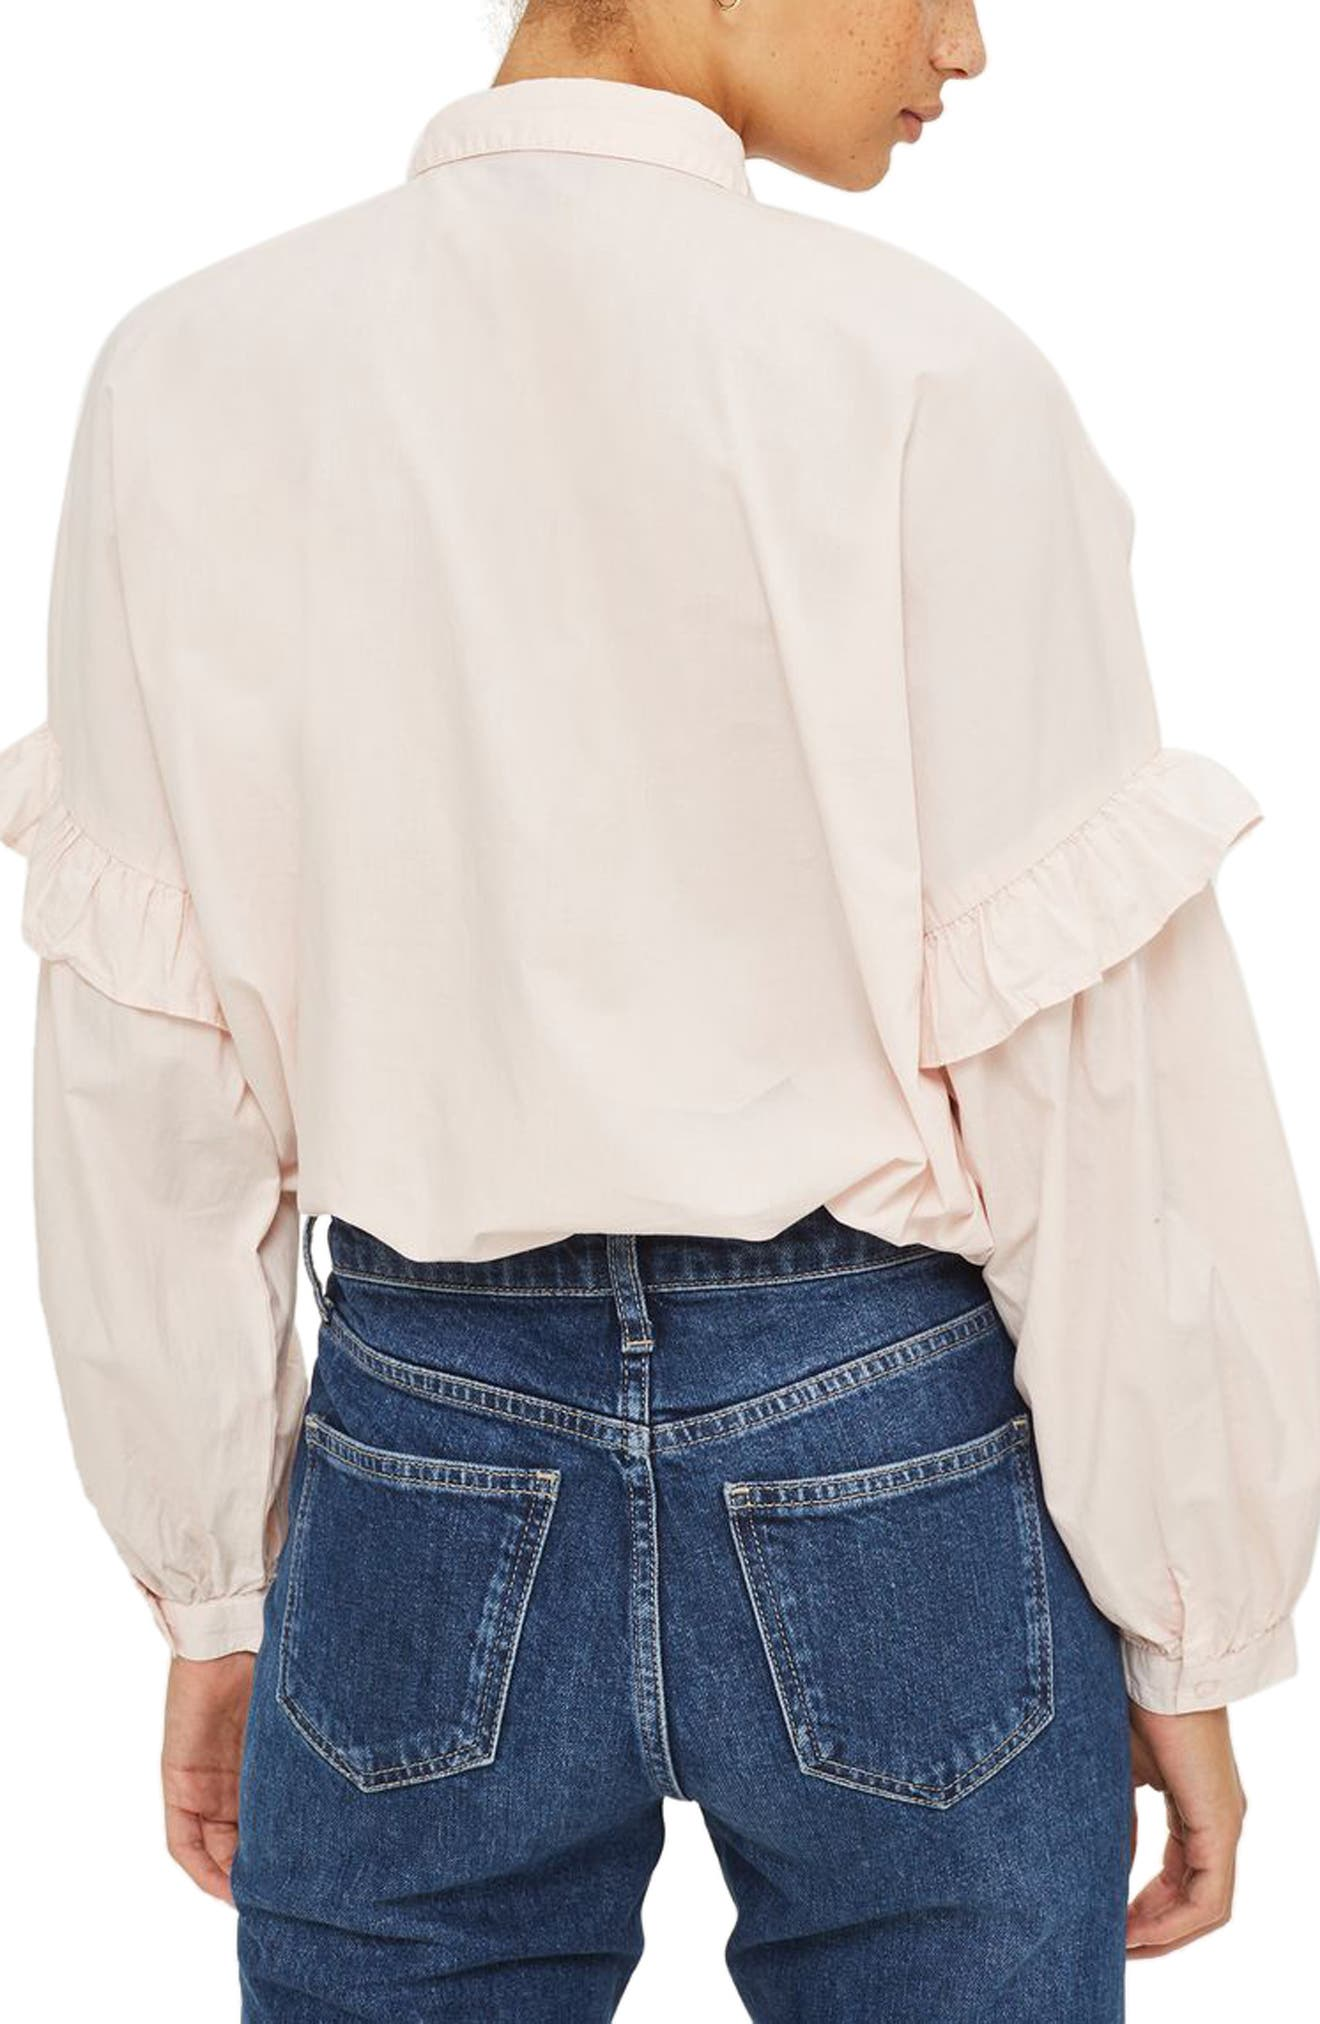 Forest Floral Embroidered Shirt,                             Alternate thumbnail 2, color,                             680